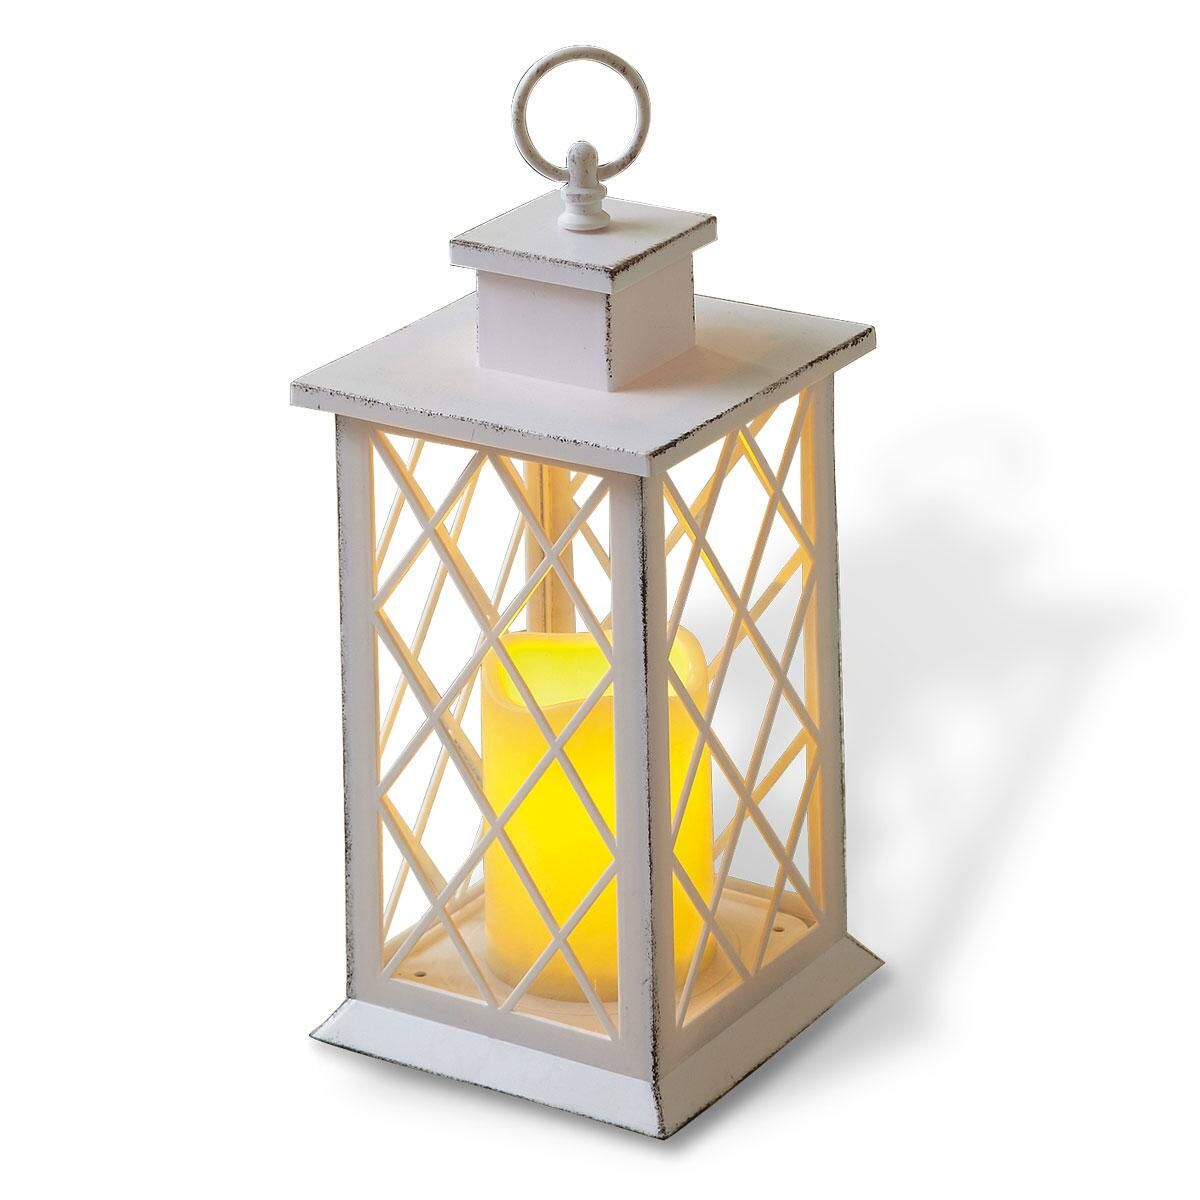 LED Lantern with Cross Window